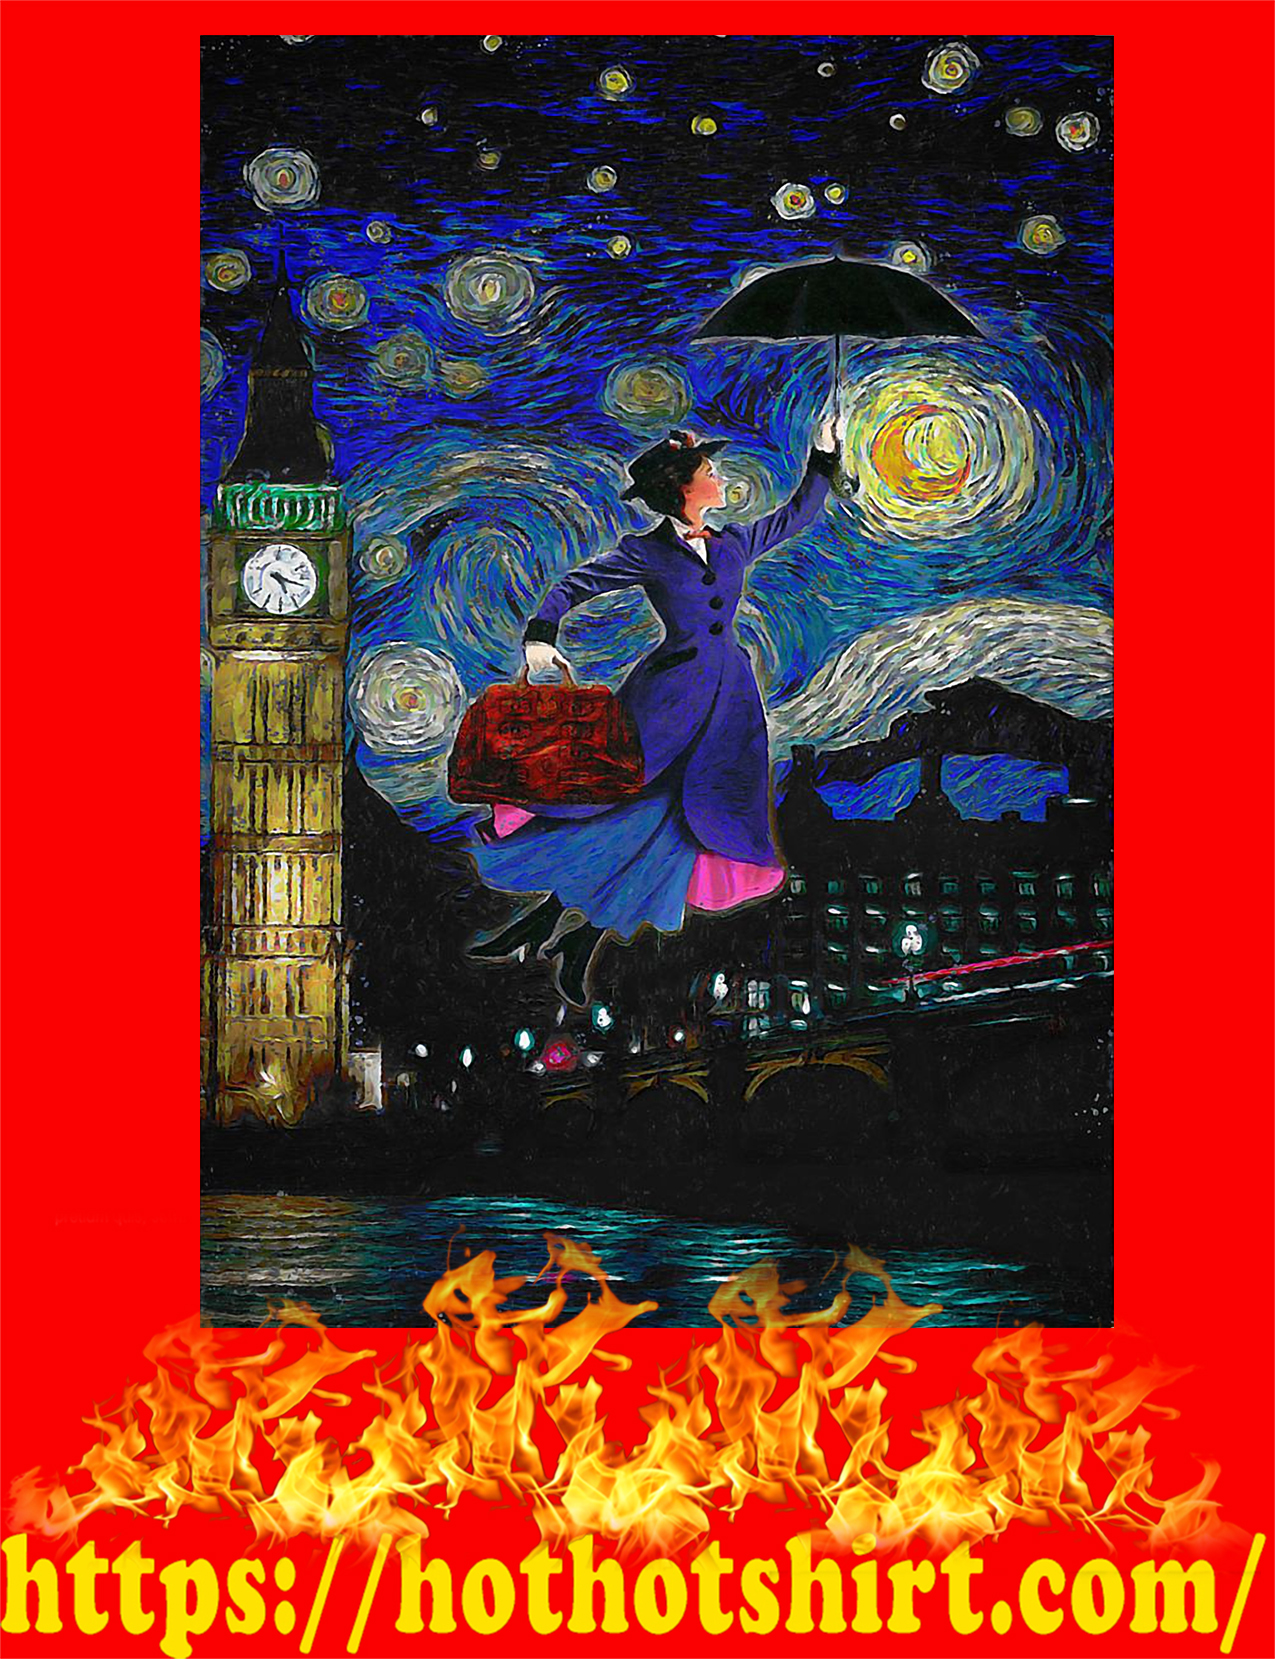 Mary poppins starry night van gogh poster - A2